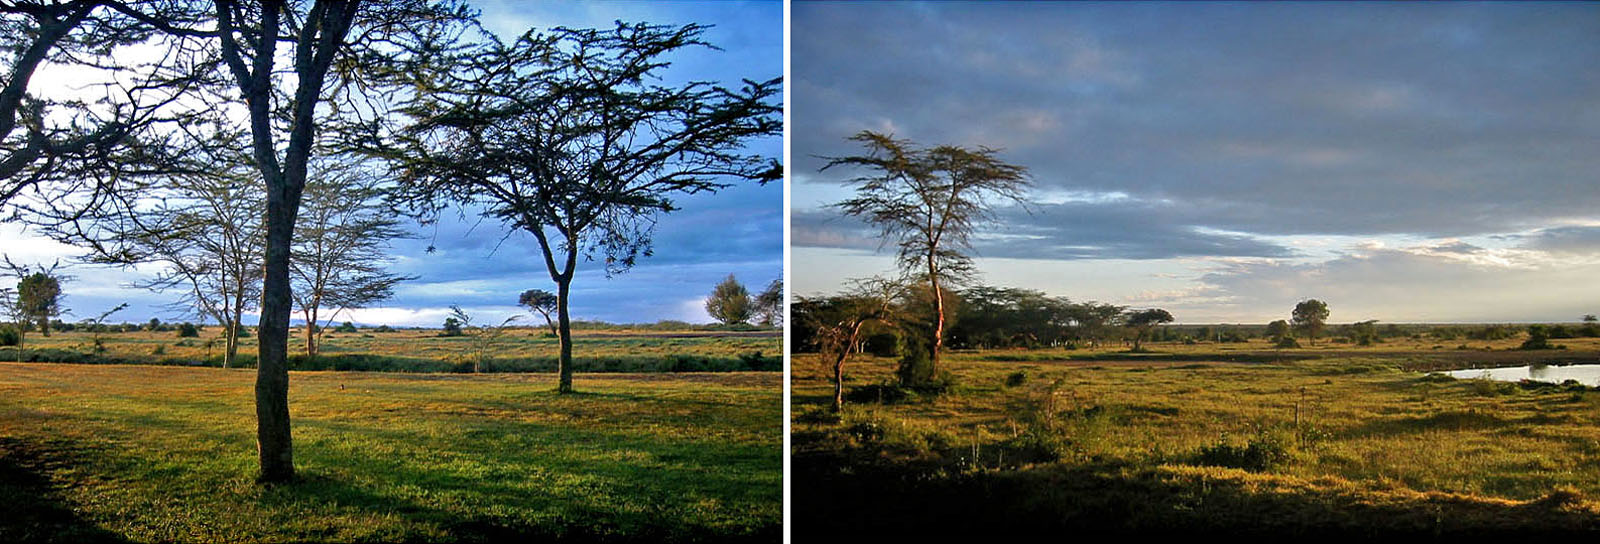 Africa Kenya Sweetwaters Tented Camp Sunrise-Sunset